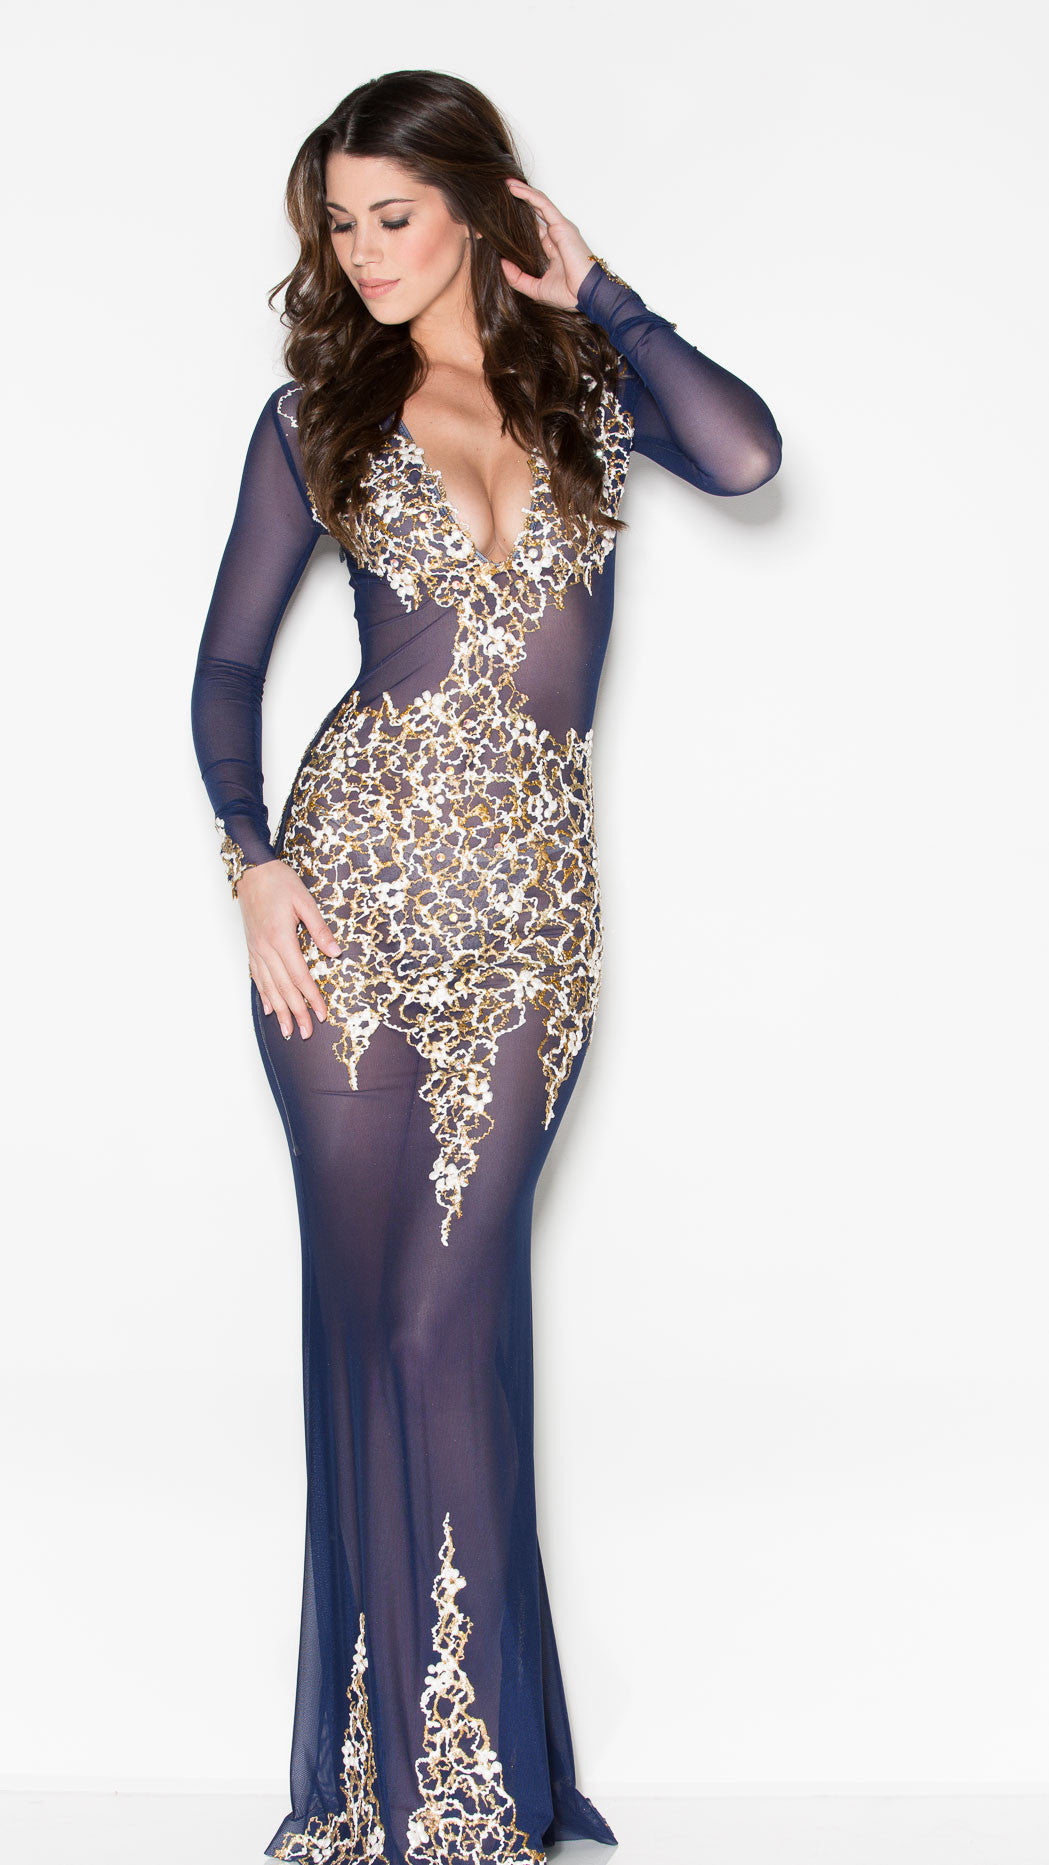 BEYONCE' GOWN IN NAVY WITH WHITE AND GOLD